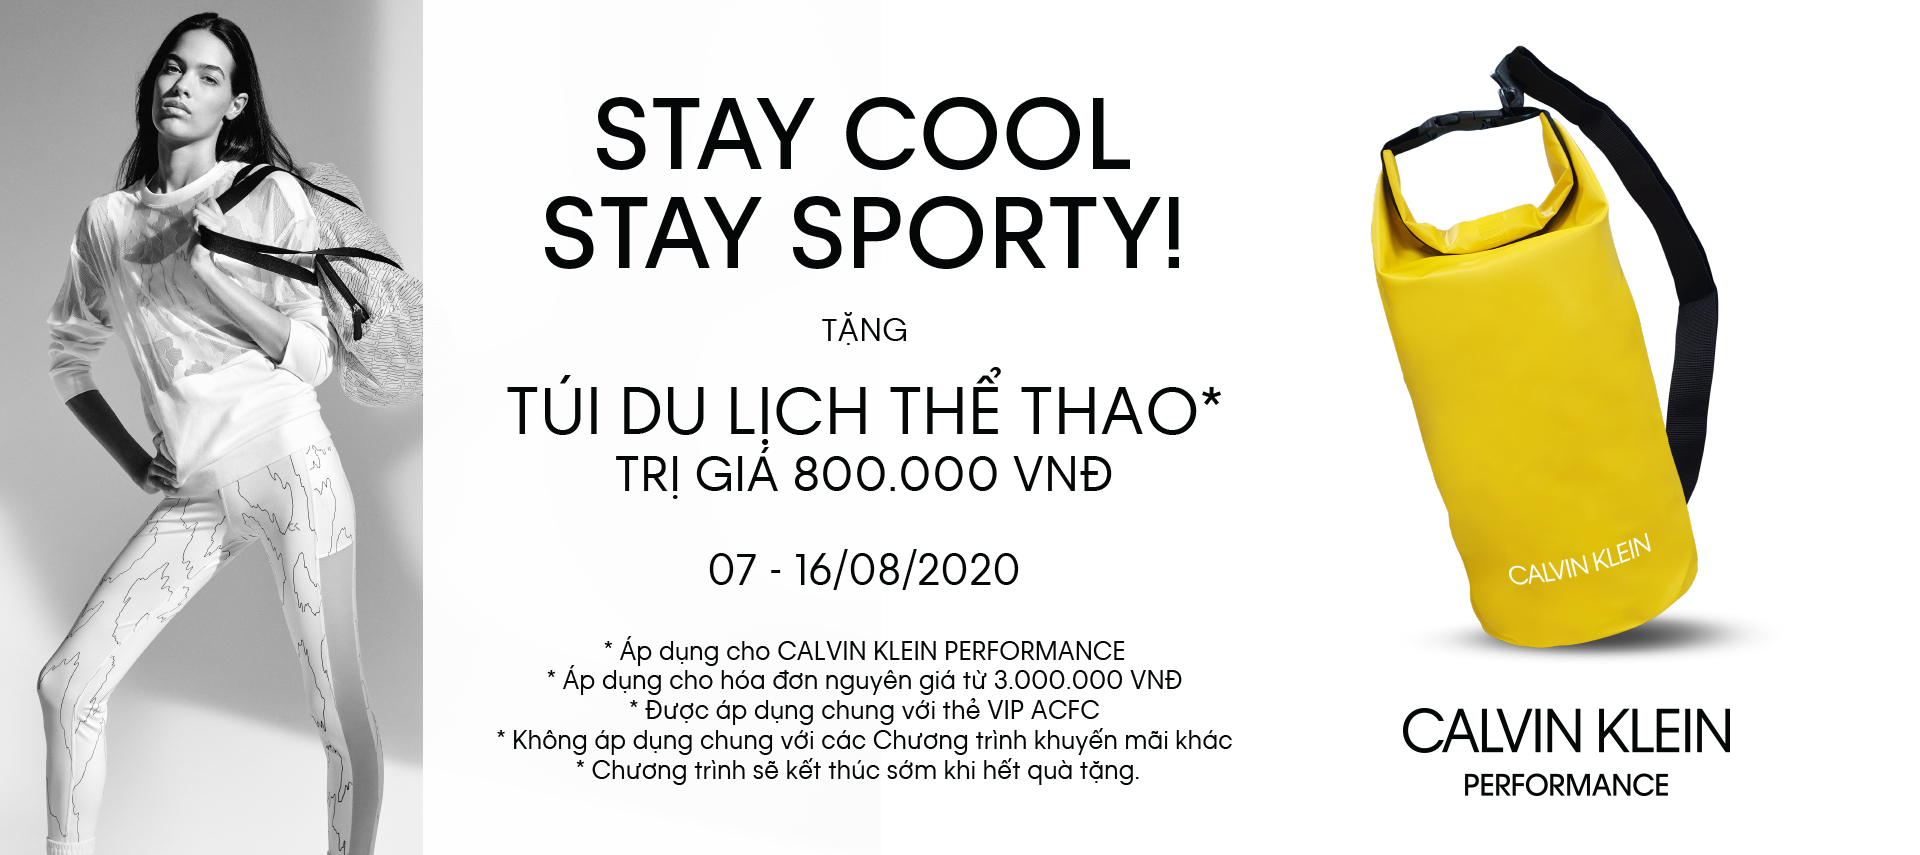 STAY COOL STAY SPORTY